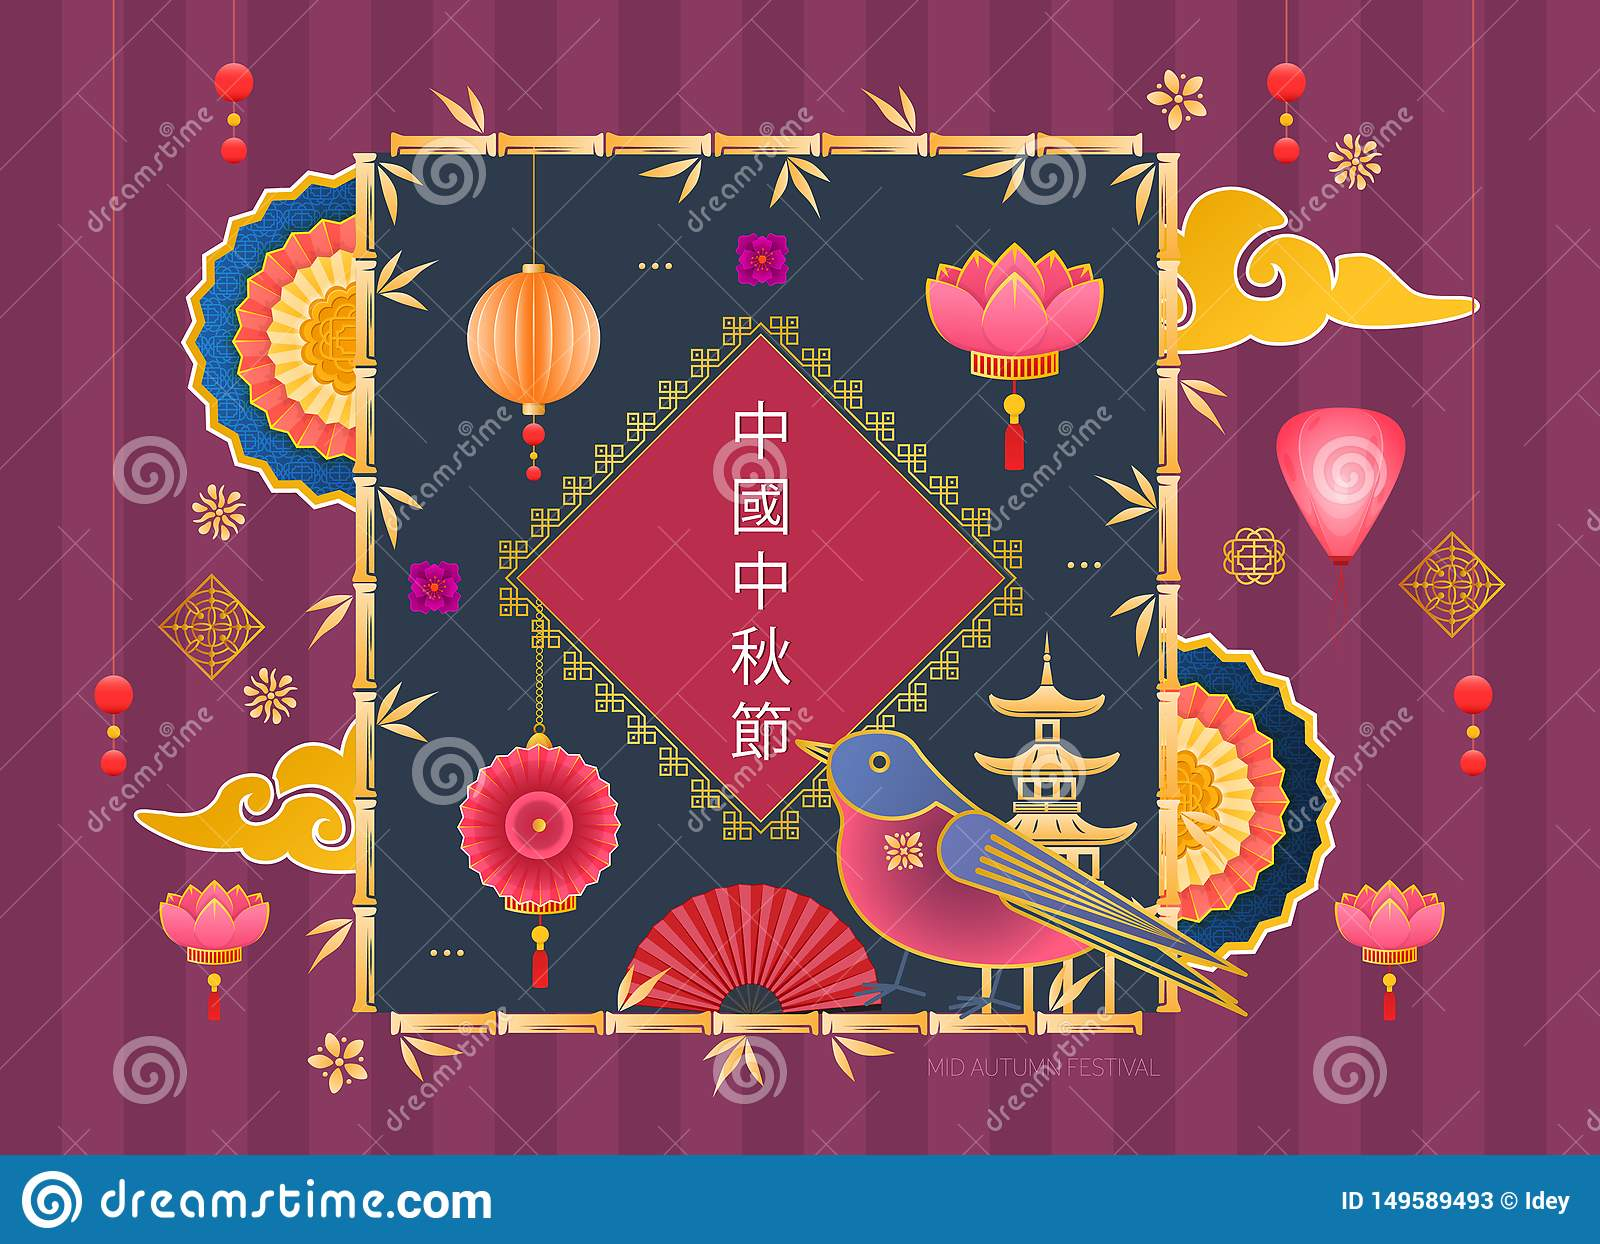 Mid autumn festival chinese with lanterns, lotus, flowers.